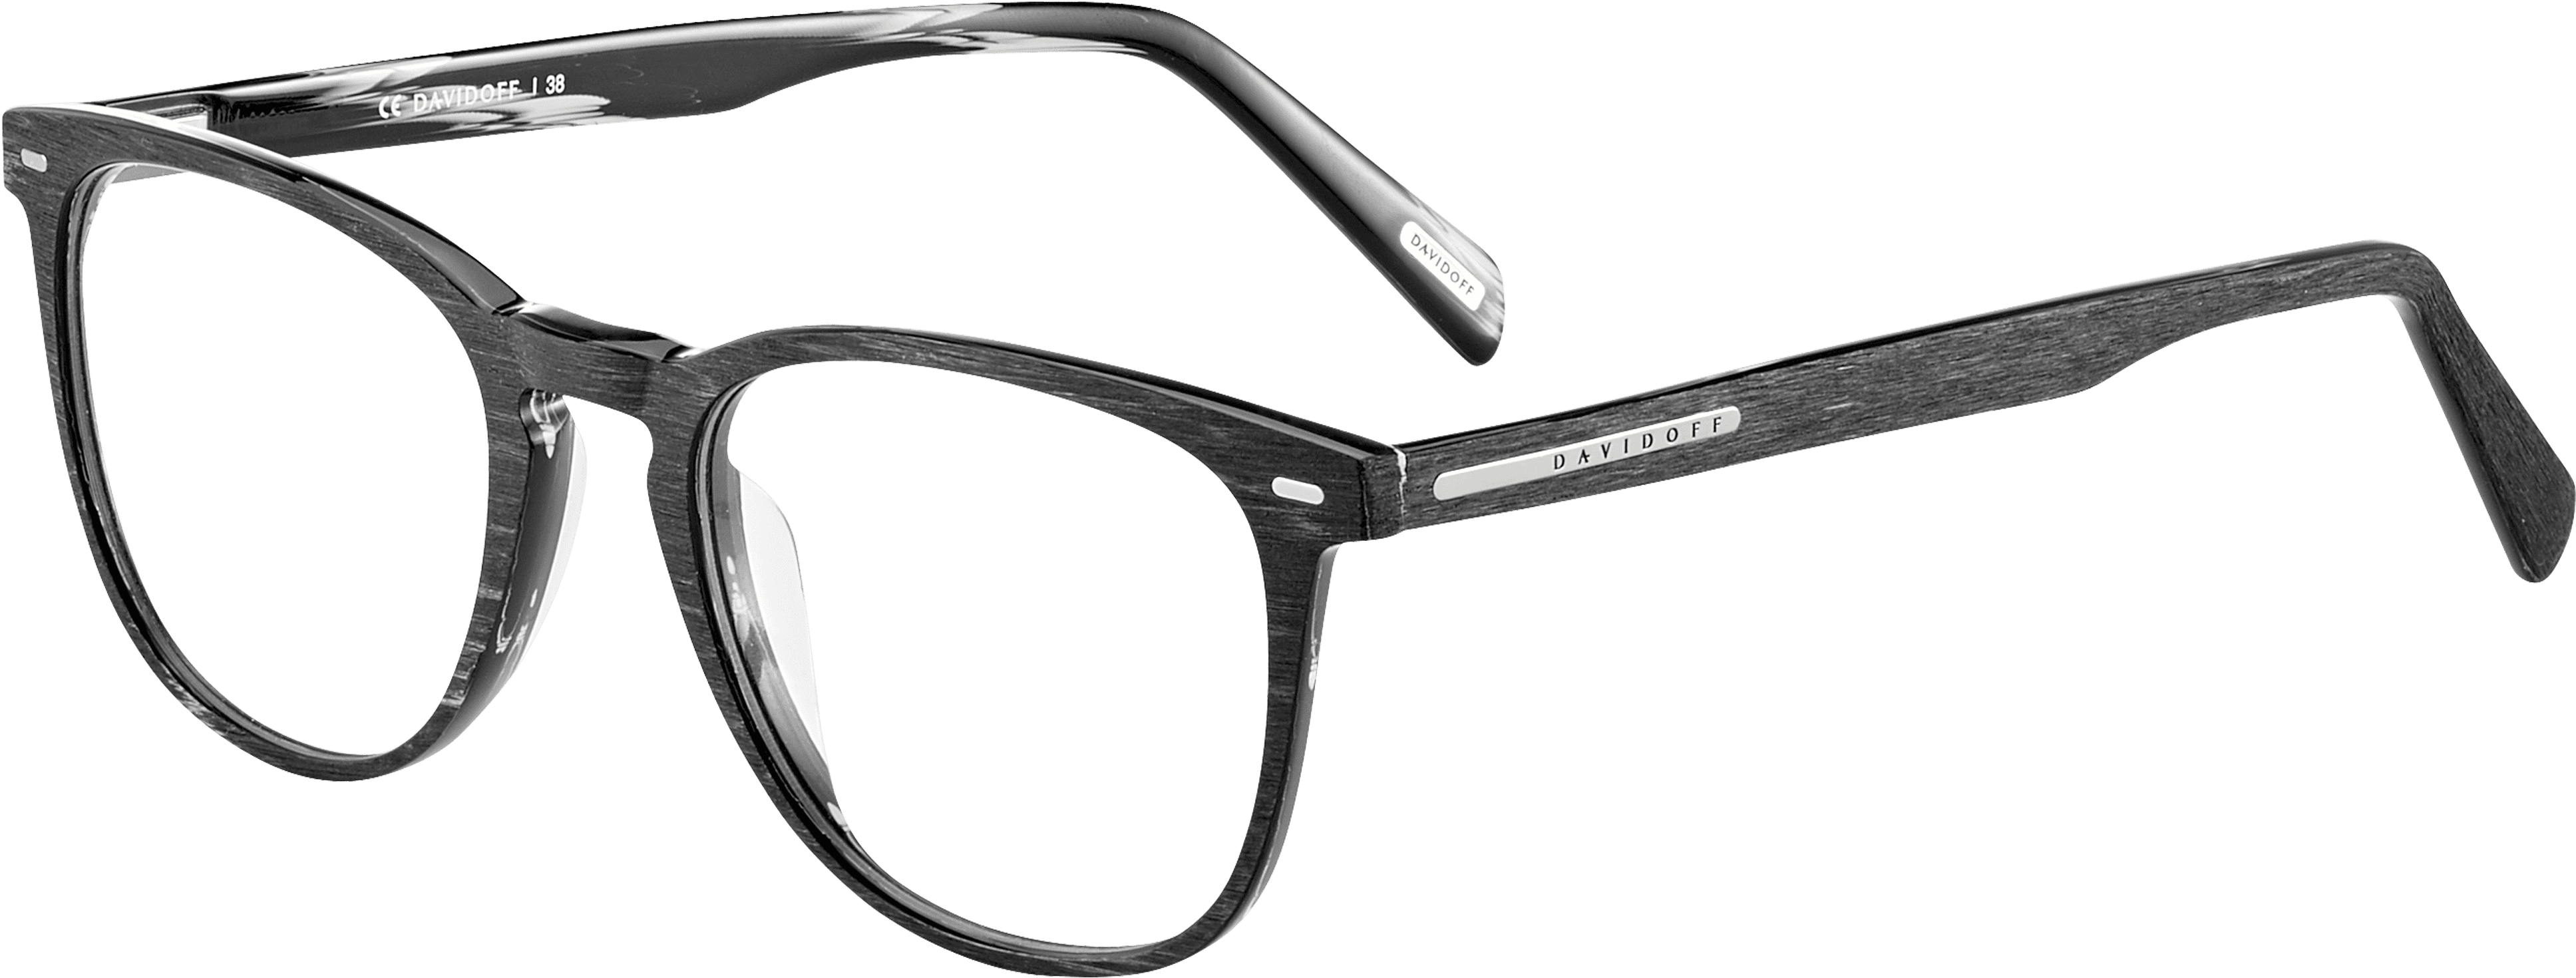 Download Insight Rimless Reading Glasses Png Insight Rimless Tag Heuer Nerd Glasses Full Size Png Image Pngkit All images and logos are crafted with great workmanship. tag heuer nerd glasses